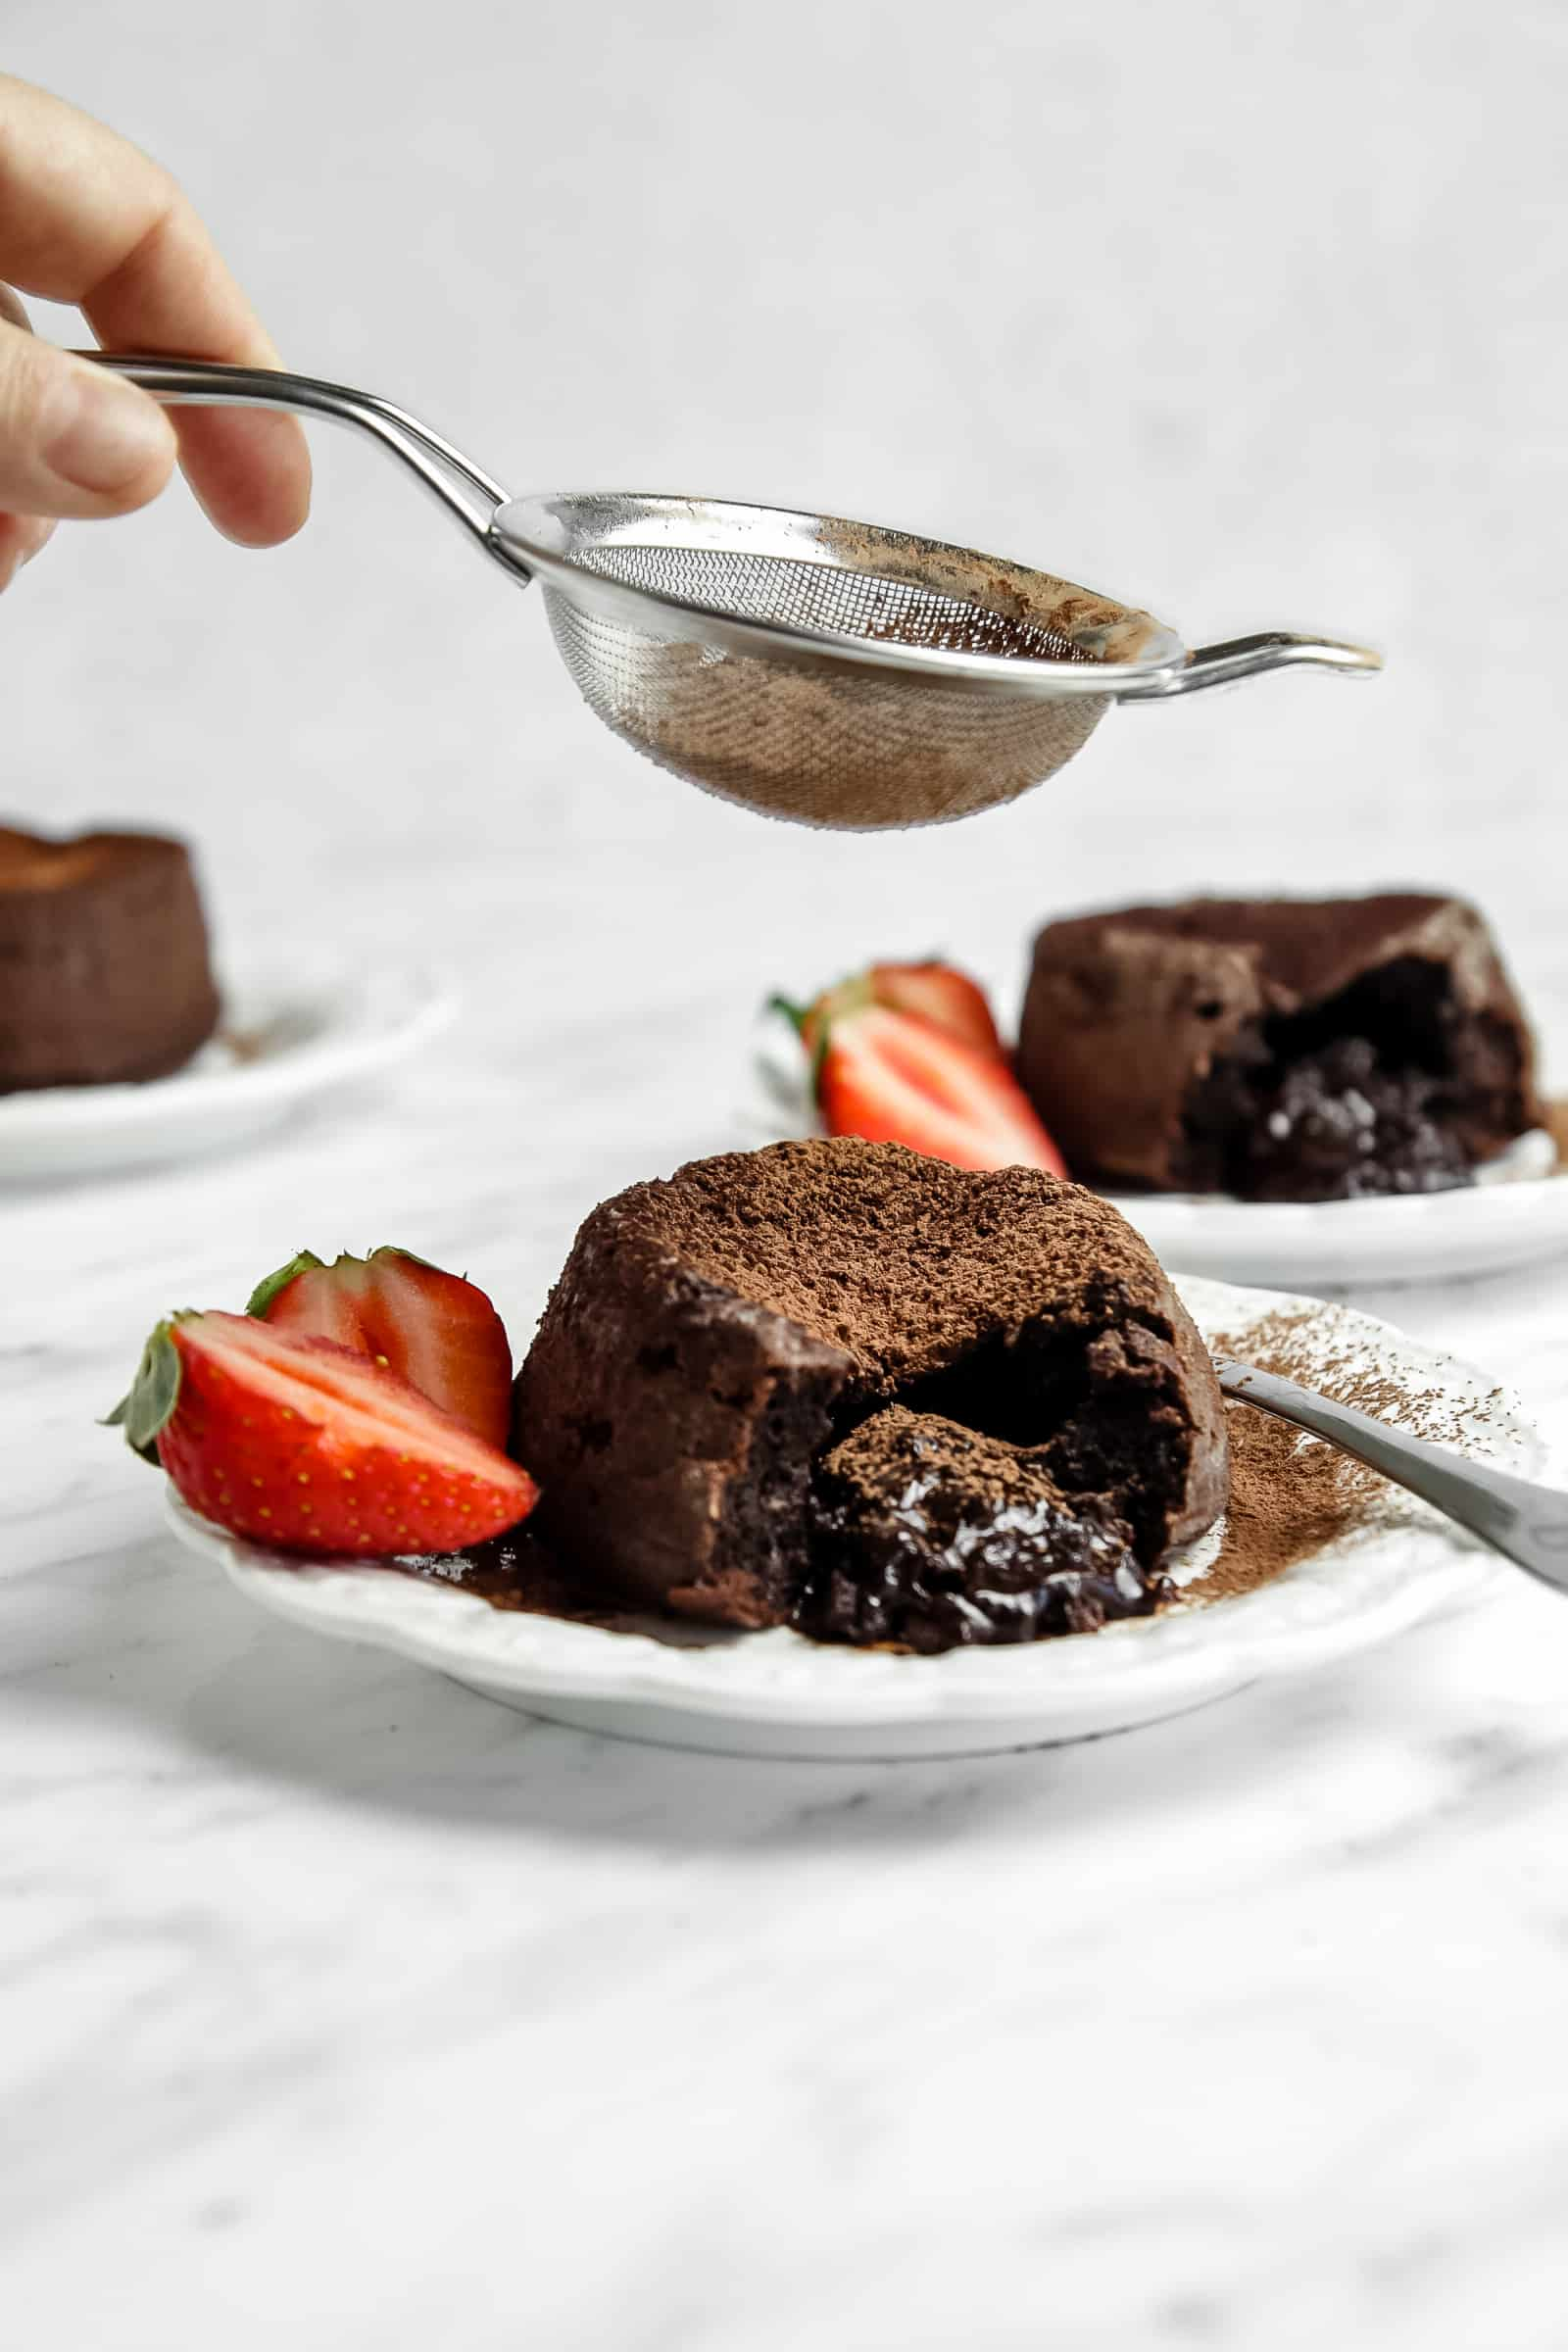 molten chocolate cake being dusted with cocoa powder